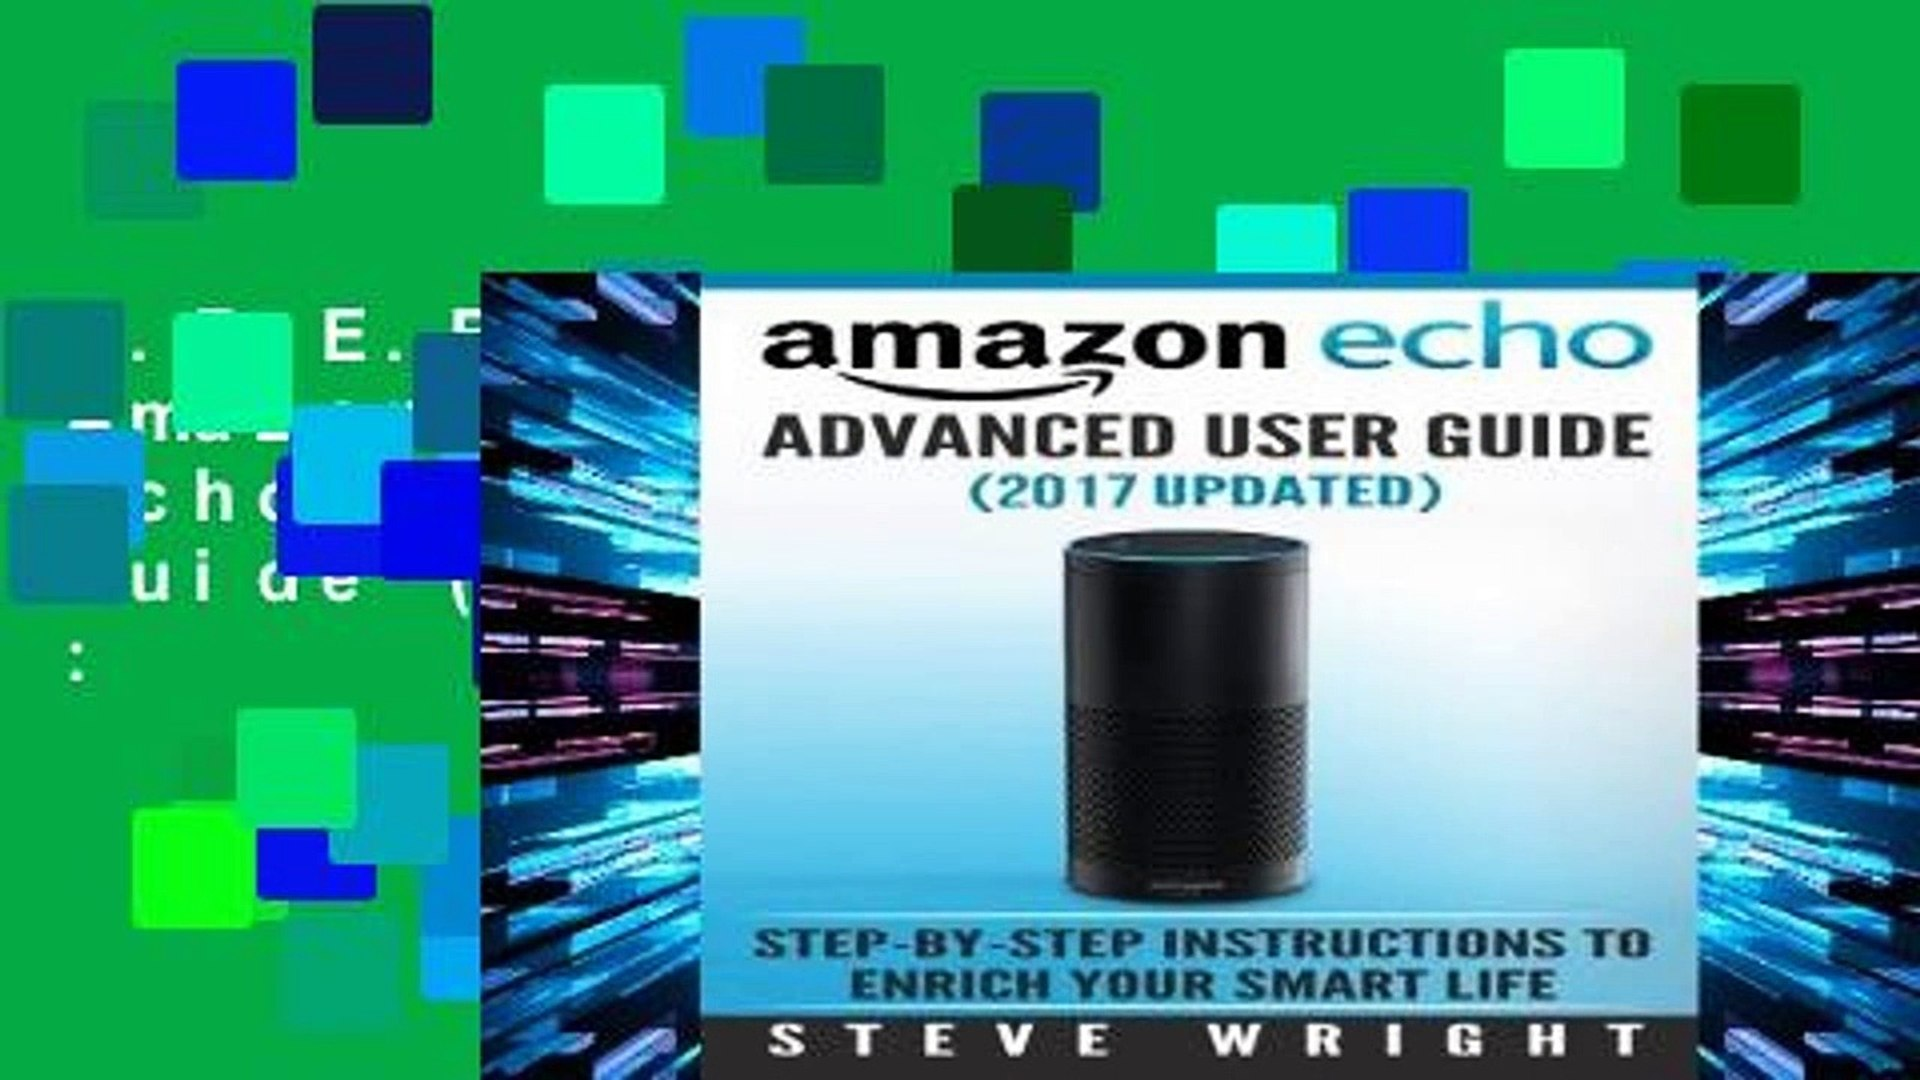 F.R.E.E [D.O.W.N.L.O.A.D] Amazon Echo: Amazon Echo Advanced User Guide (2017 Updated) :